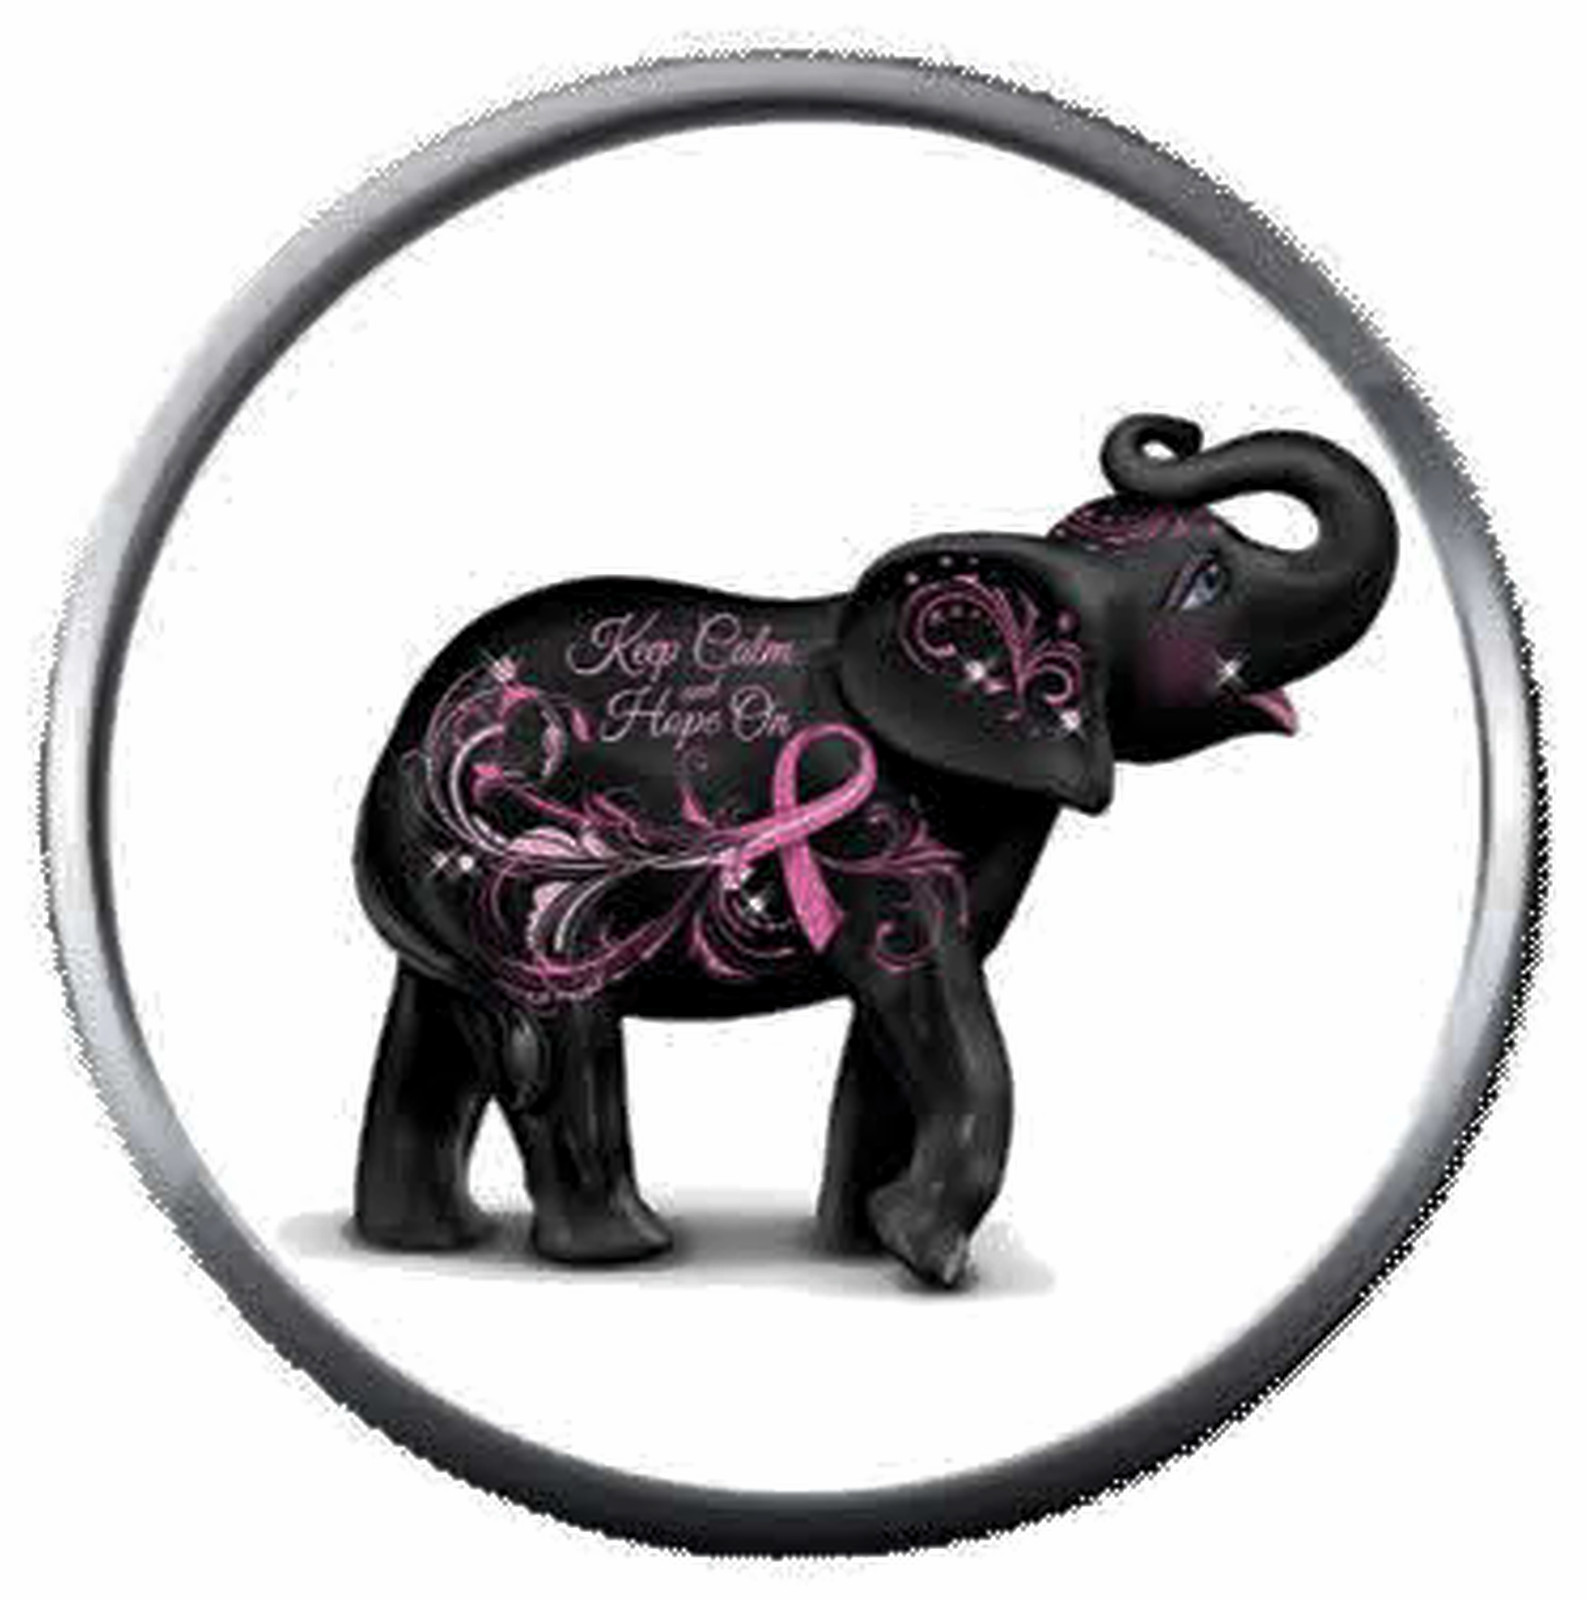 Jan Elephant Strength Courage Breast Cancer Ribbon 18MM-20MM Snap Jewelry Charm